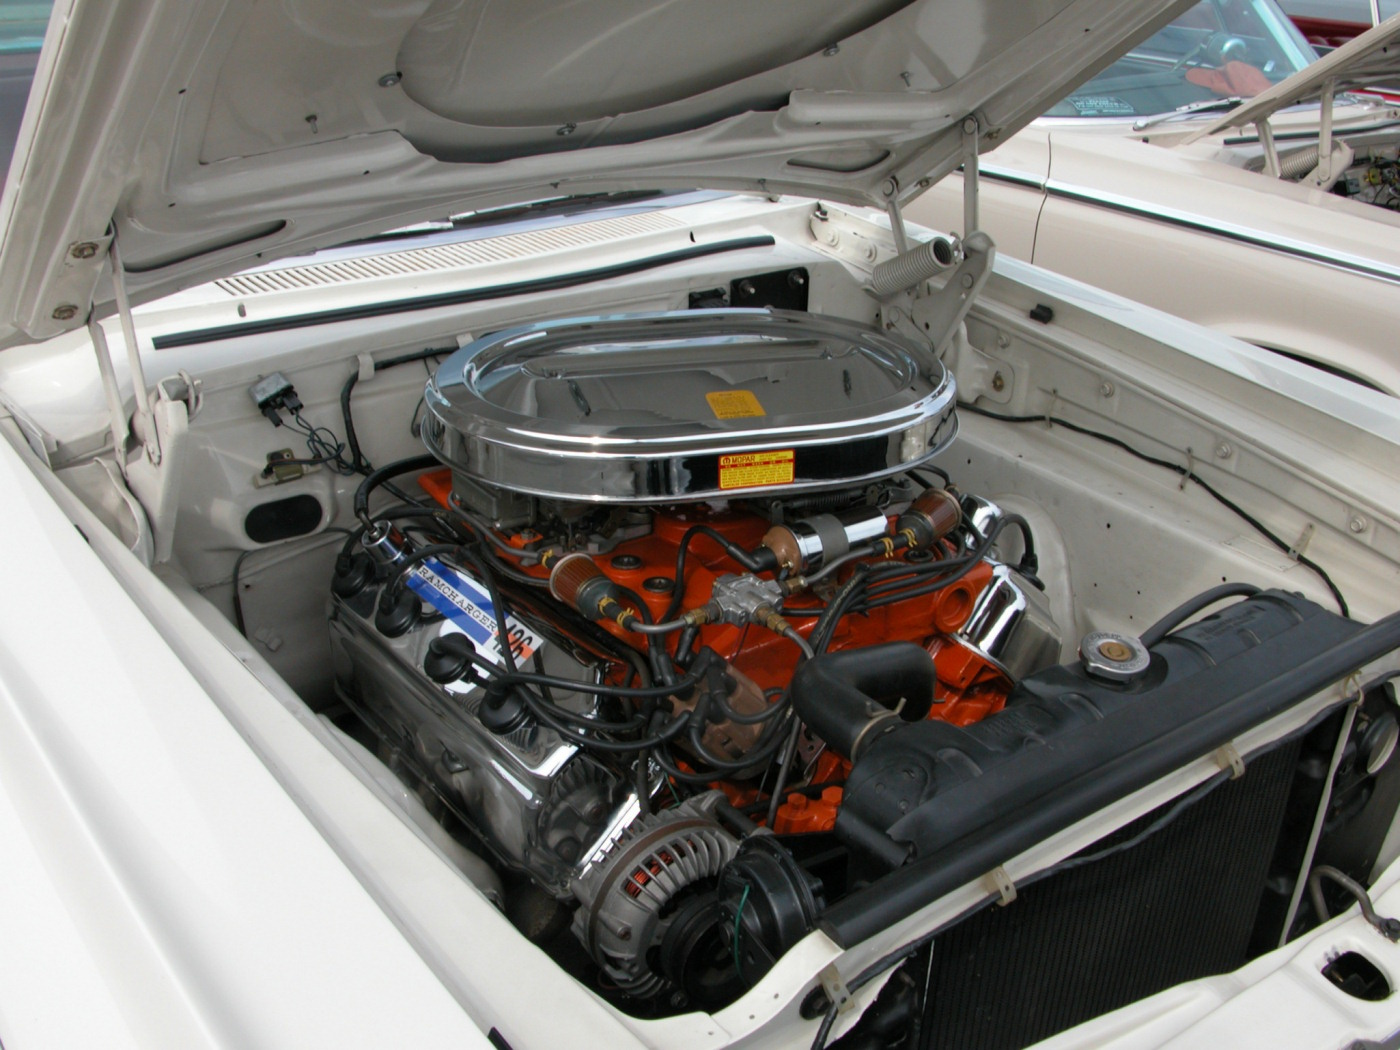 1964 Dodge 440 Hardop 426 Short Ram Drag Race Hemi Engine fvr White (2005 Dream Cruise) DSCN9267.jpg